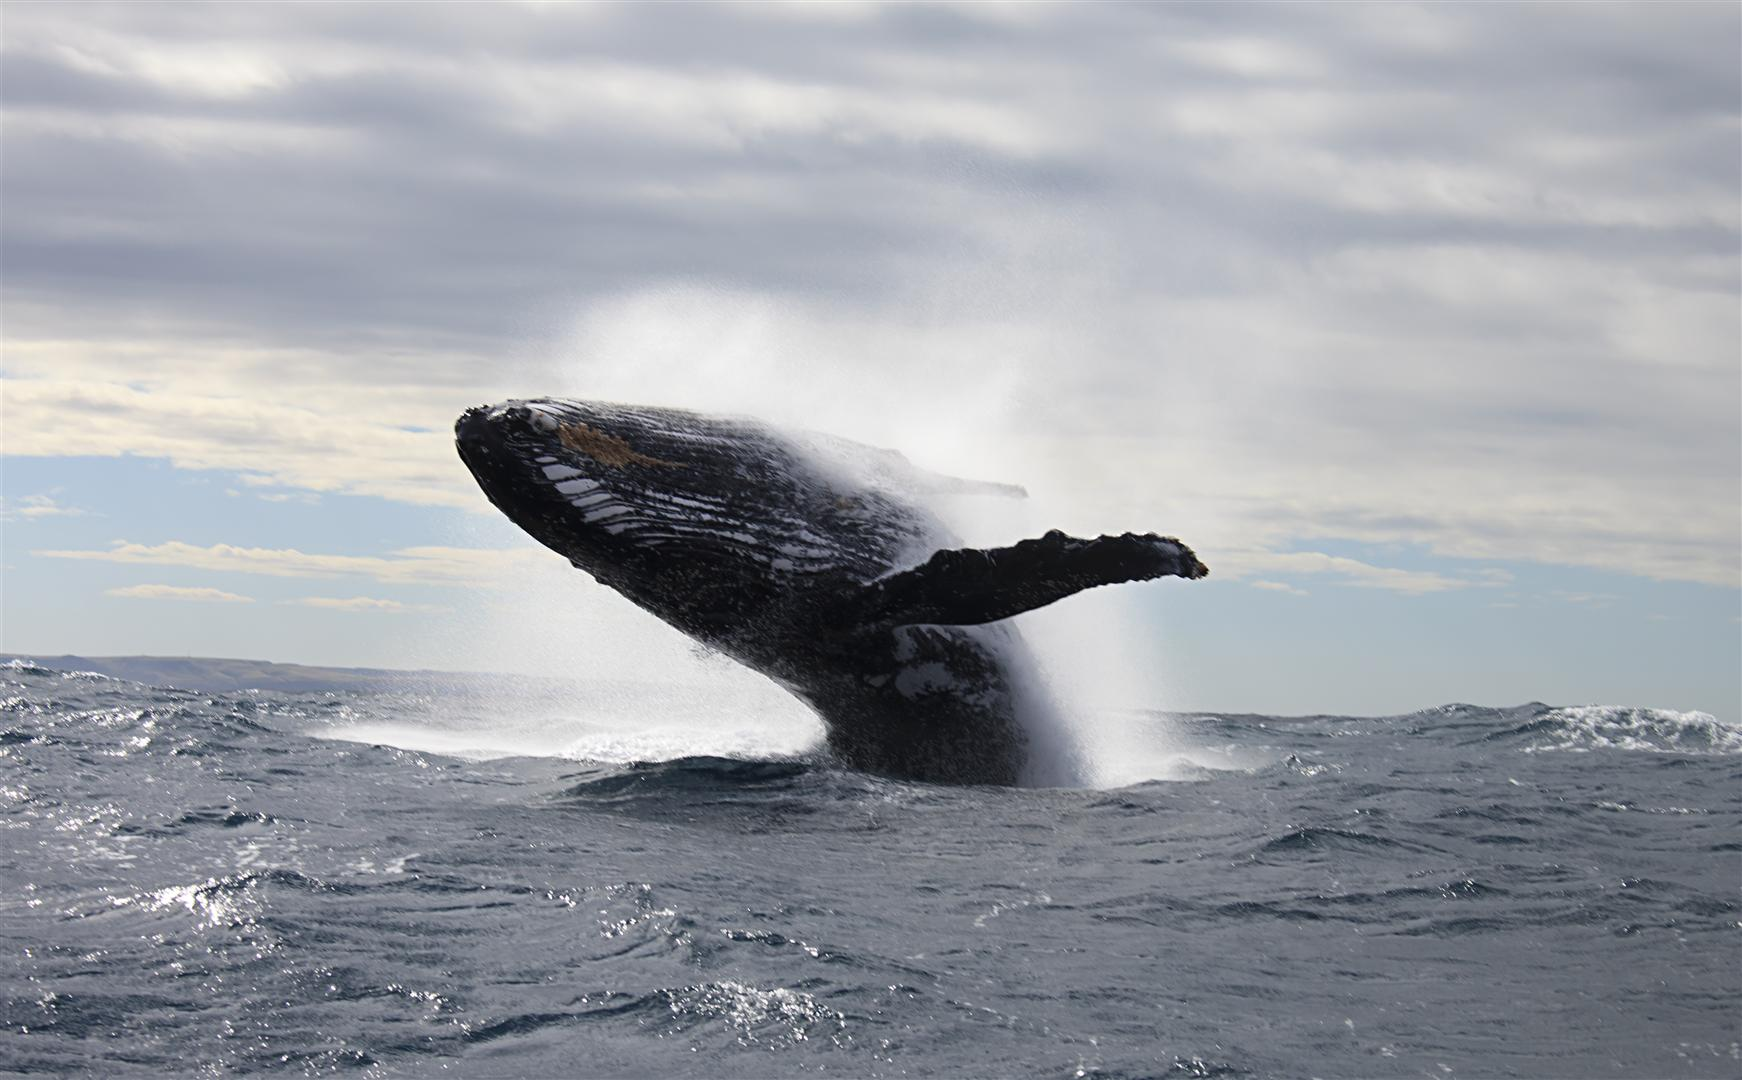 Humpback Whale, South Africa.